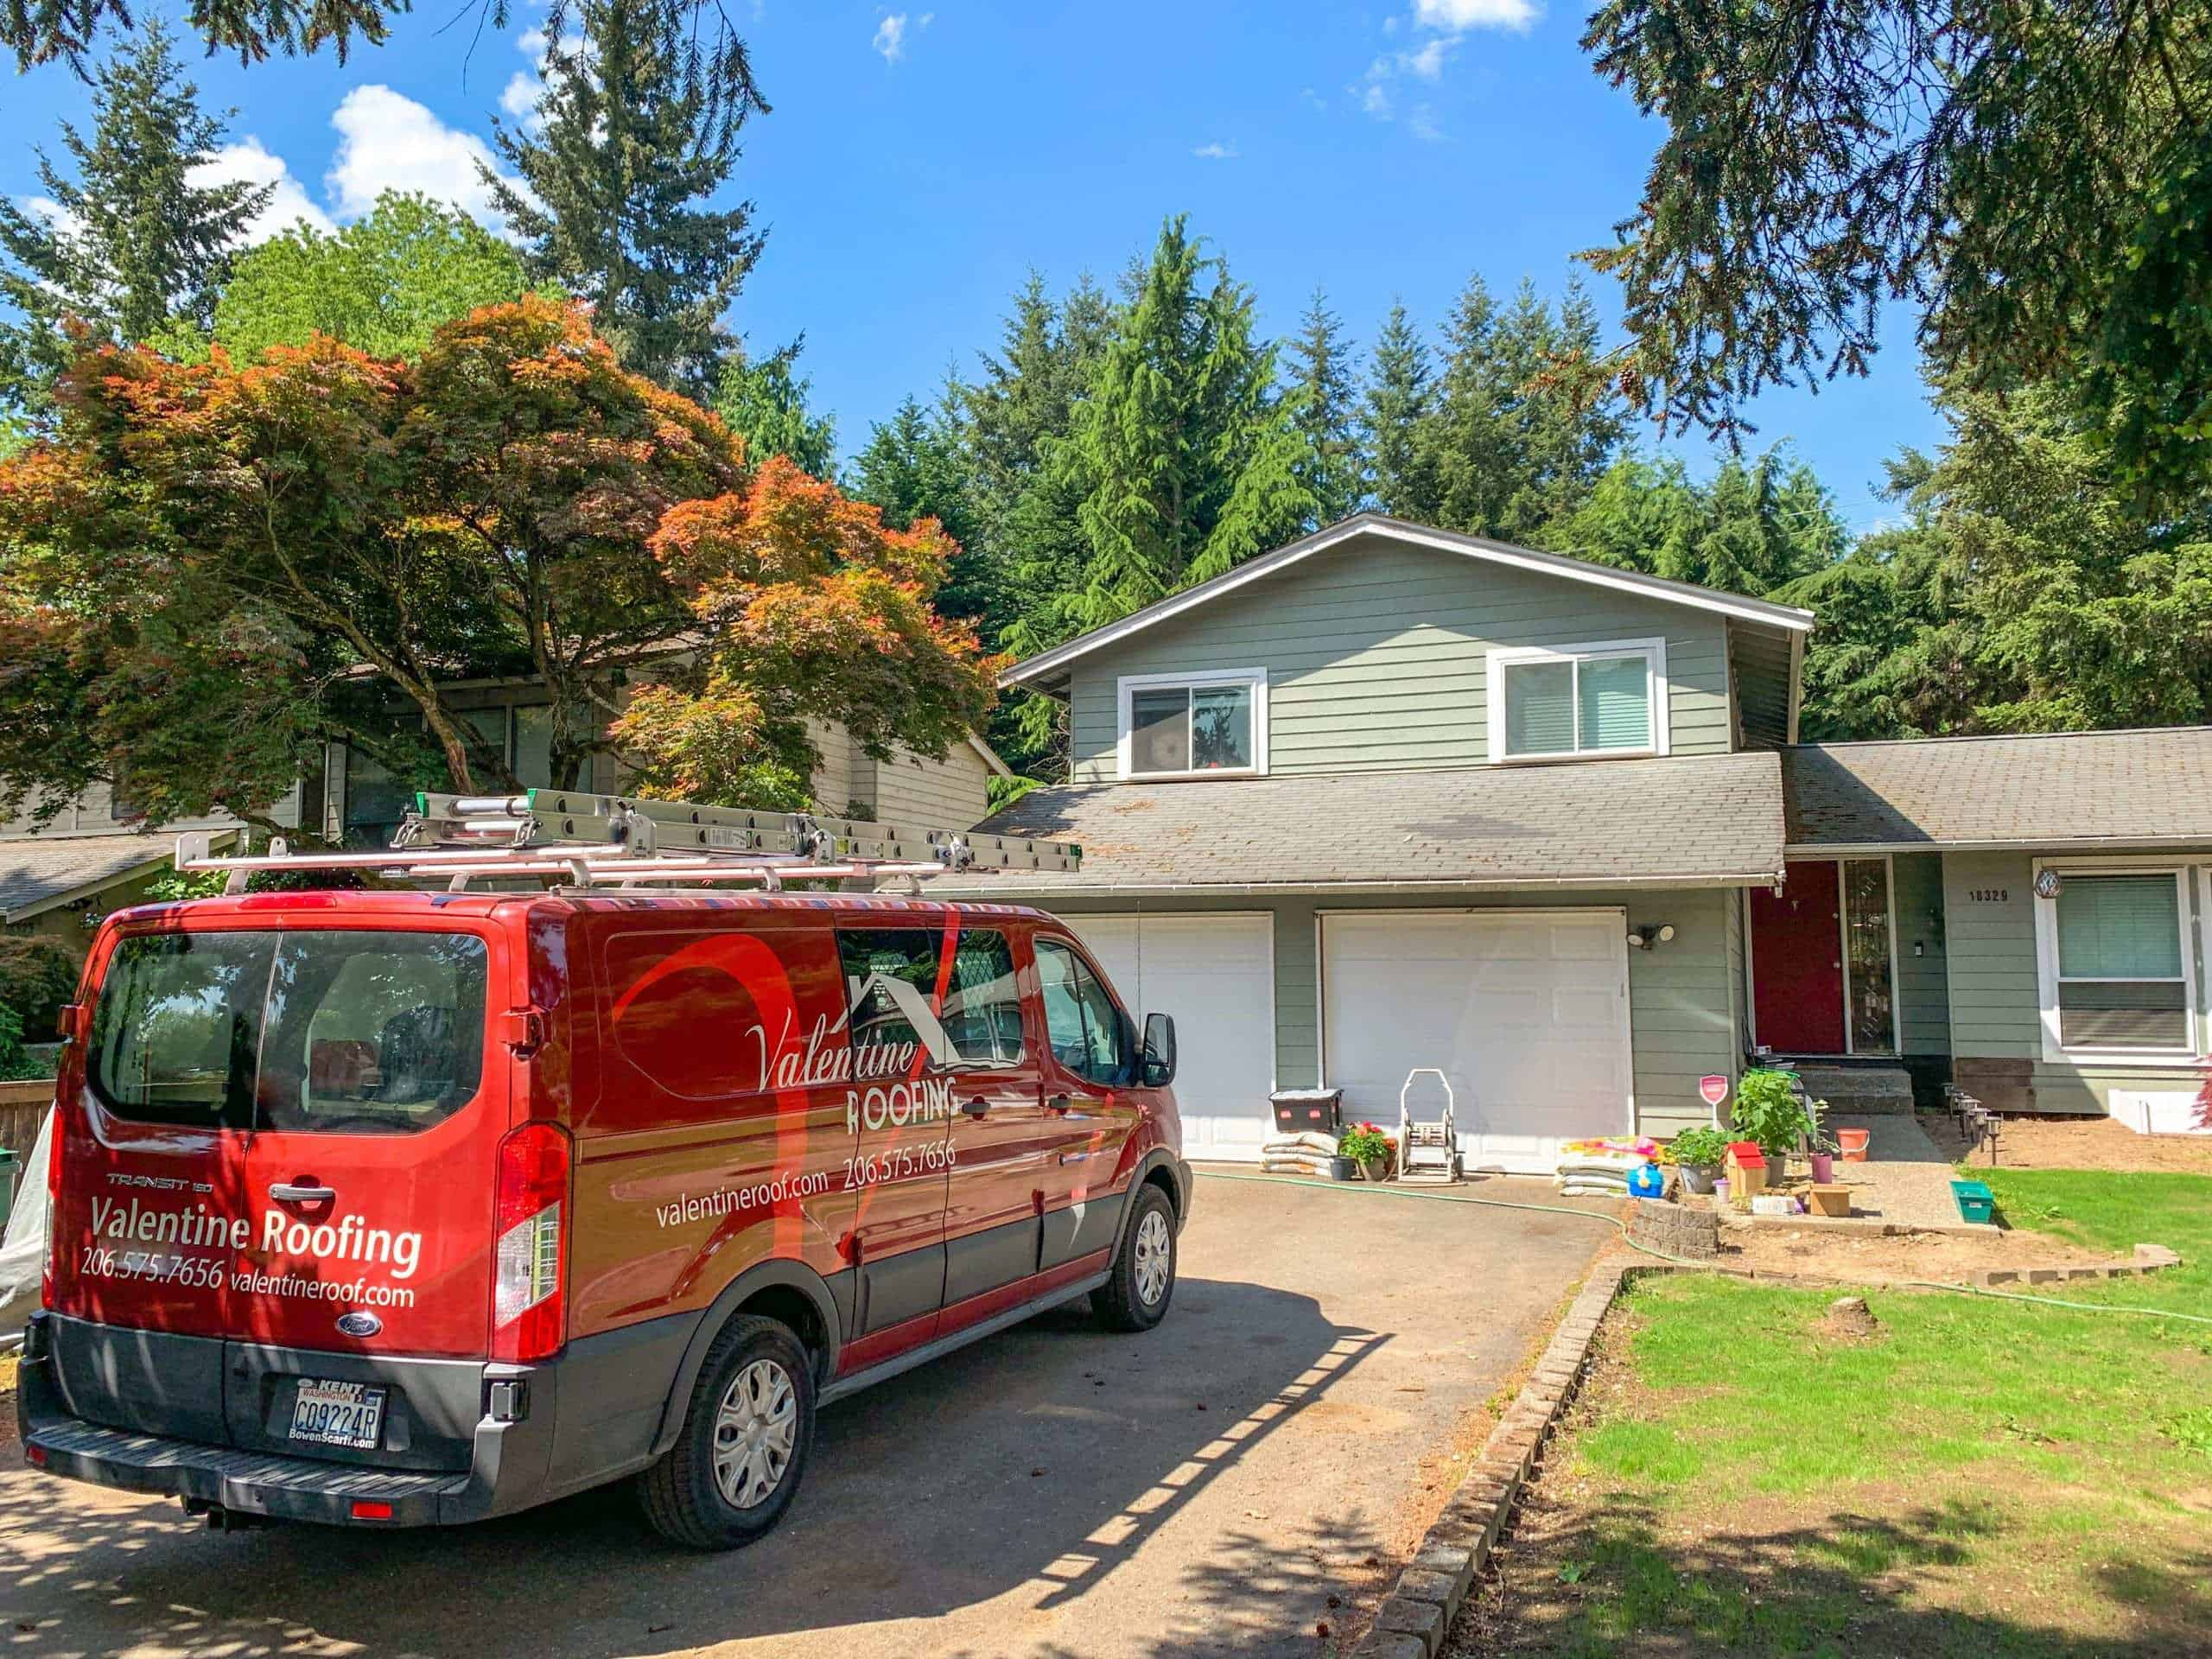 Virtual Roofing Estimates by Valentine Roofing - Professional Residential Roofing Contractor - Seattle, WA Tukwila, WA Marysville, WA